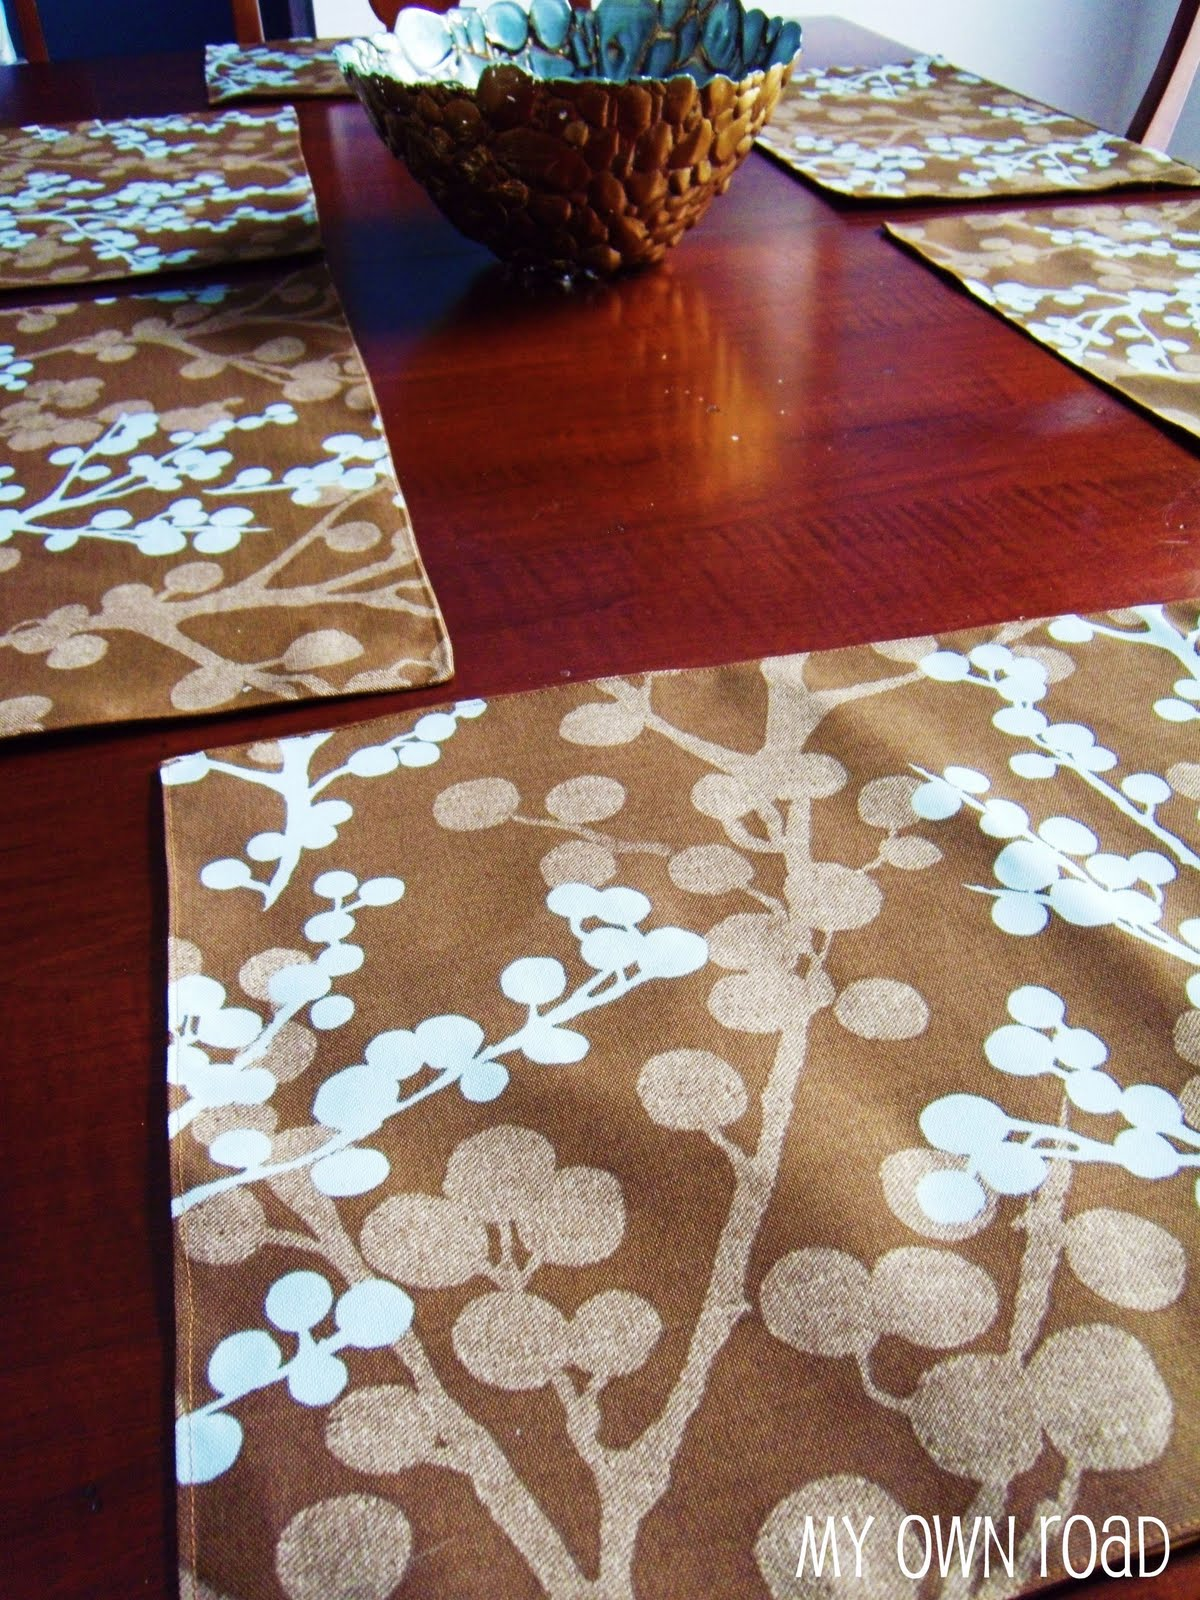 Make placemats from photos 80 best Darksiders images on Pinterest Videogames, Darksiders